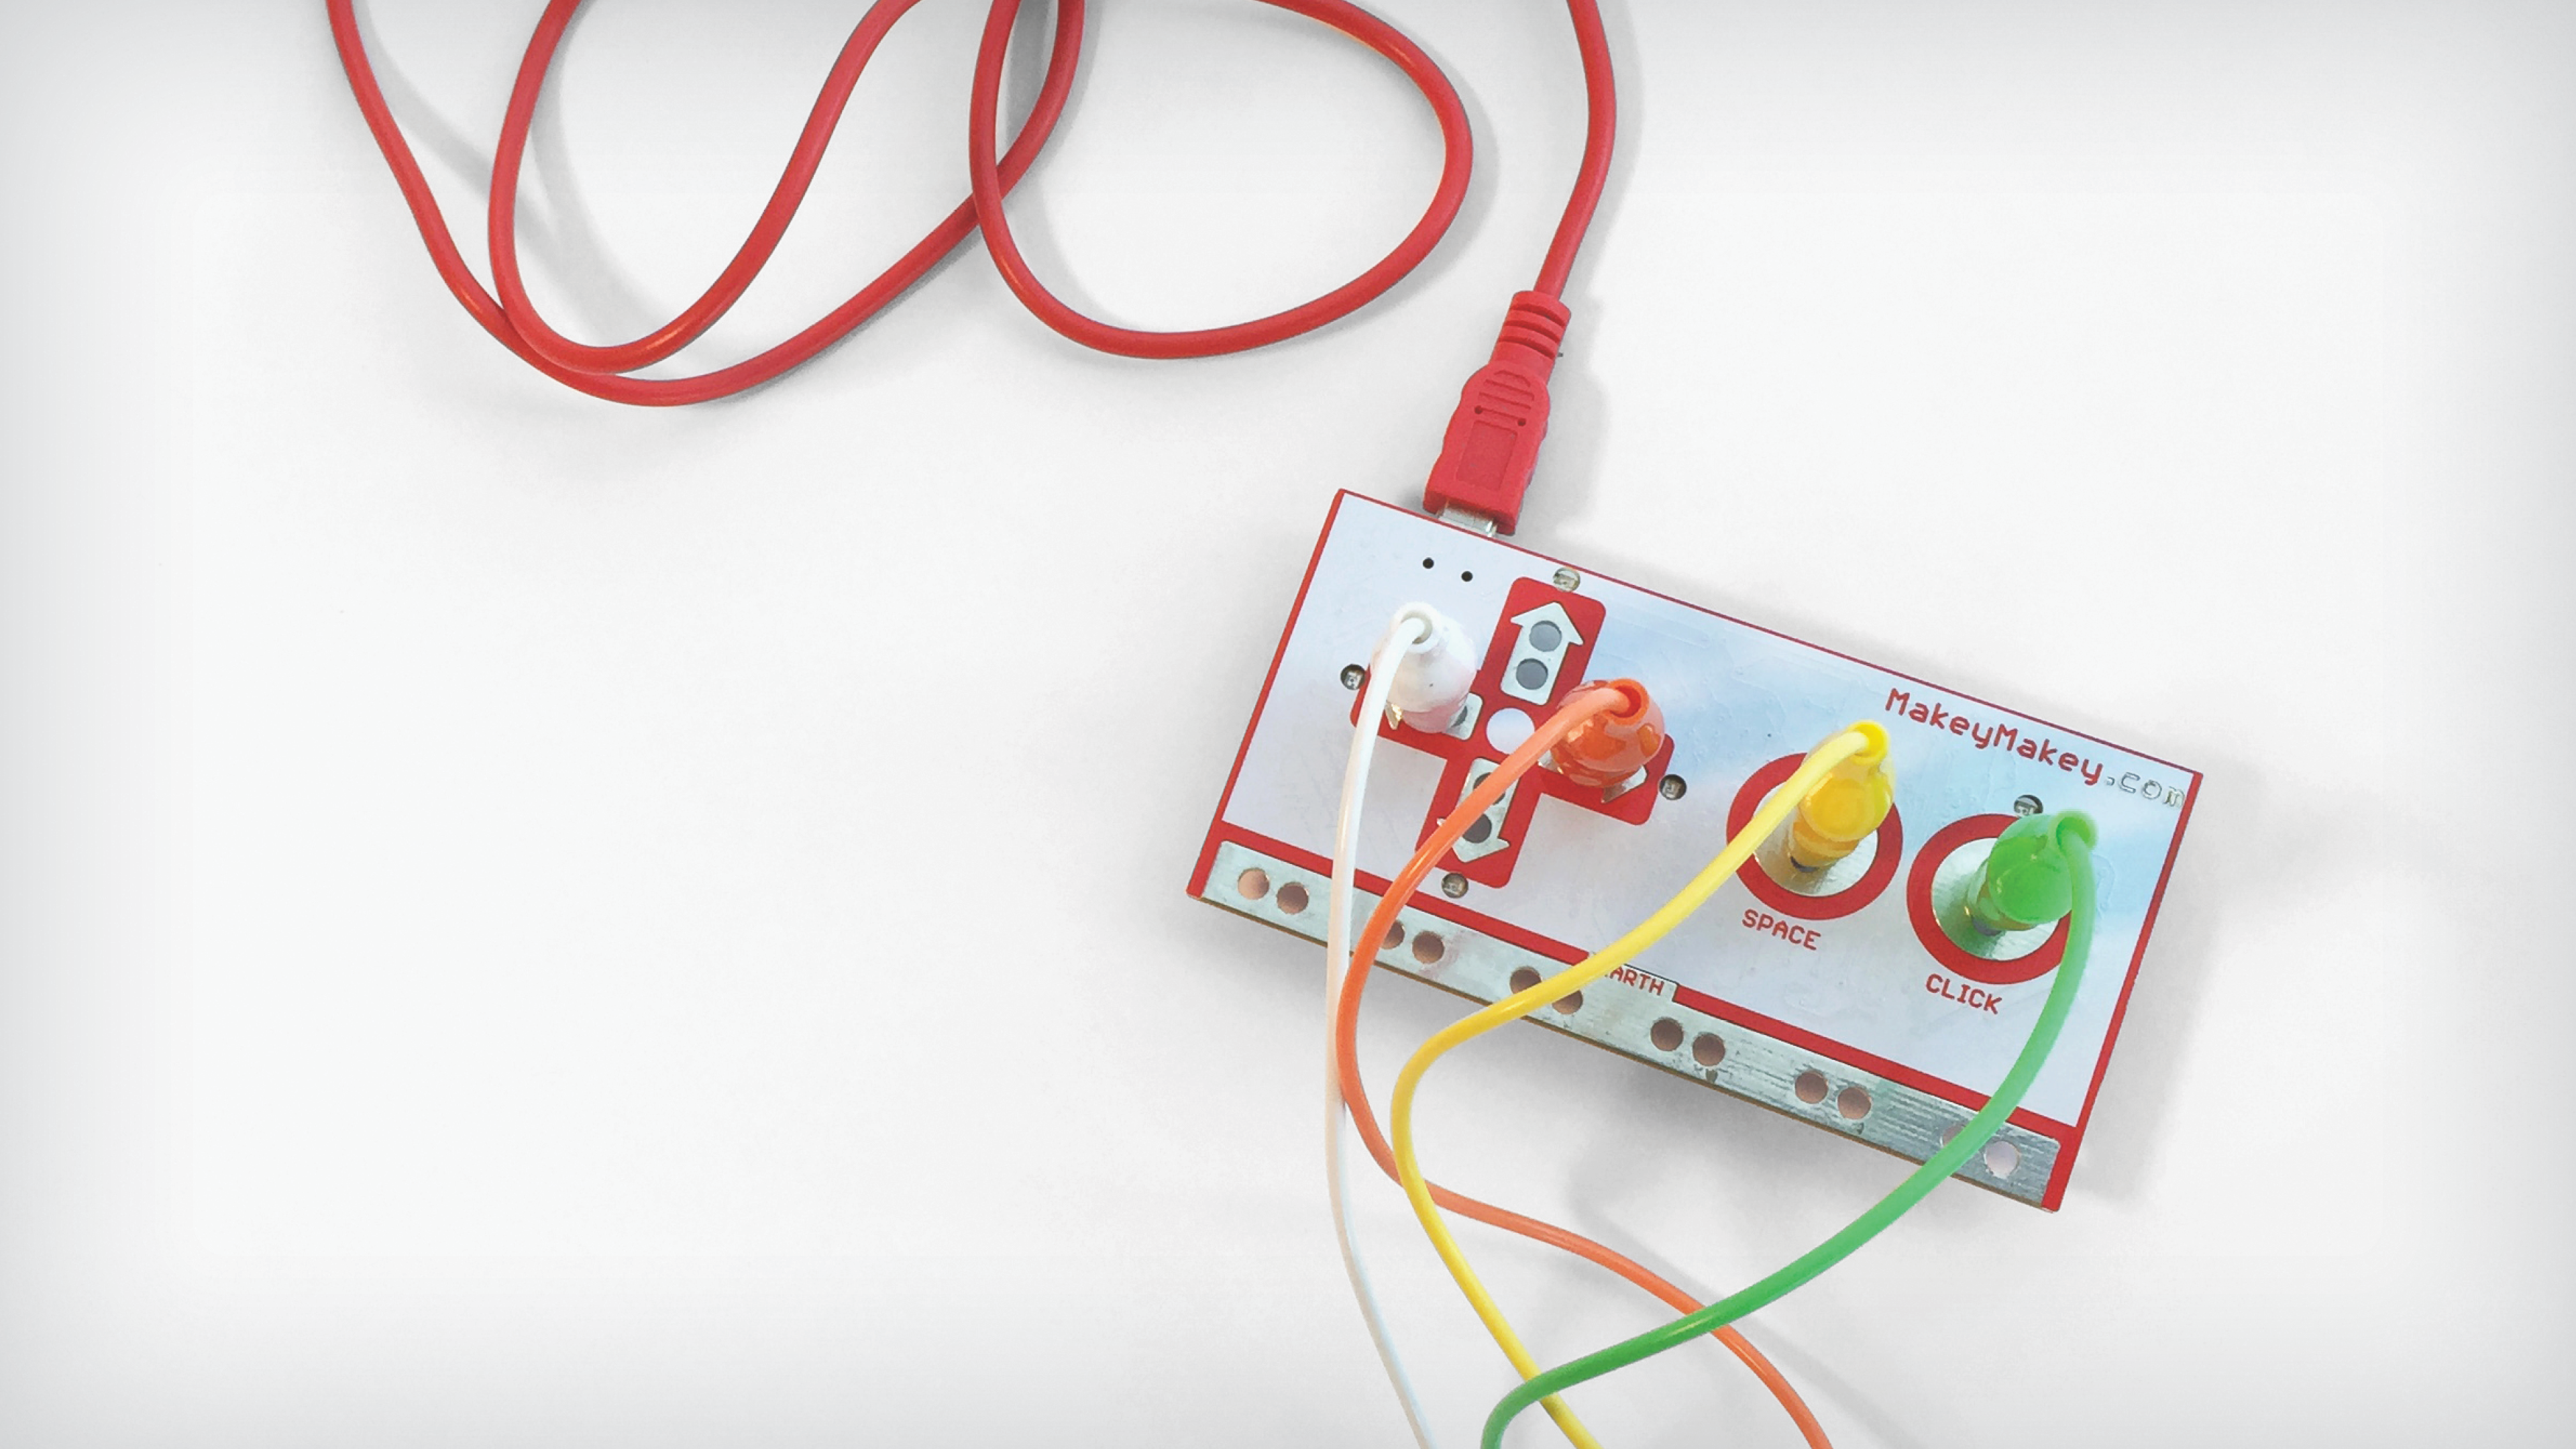 Graphic: Makey Makey